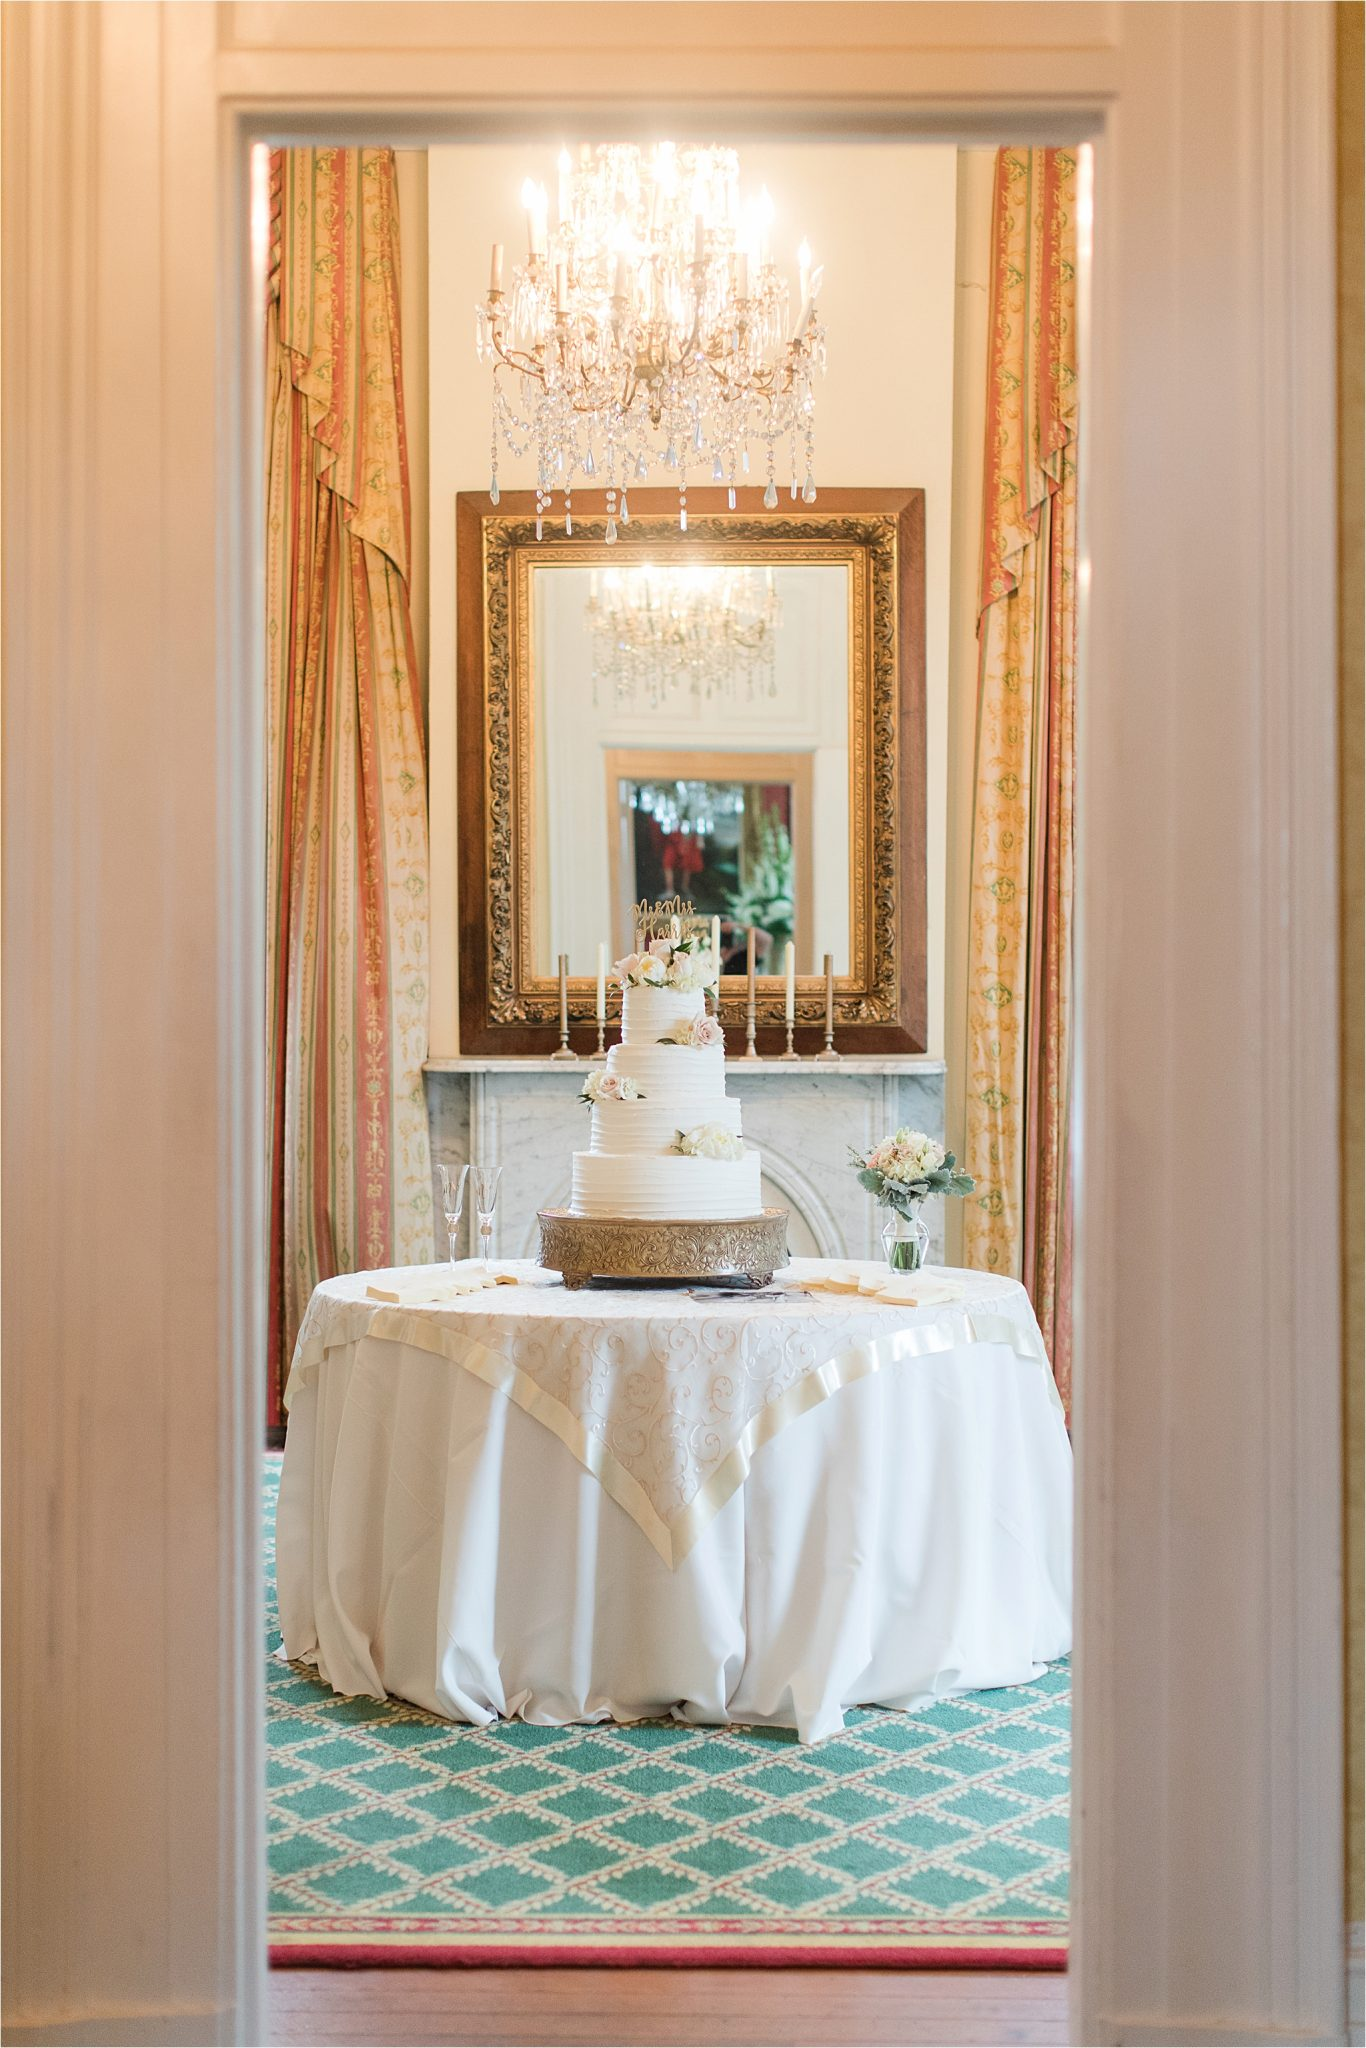 ezell house wedding reception-wedding cake- three tier-rustic cake stand-under of flowers-historic downtown mobile-alabama